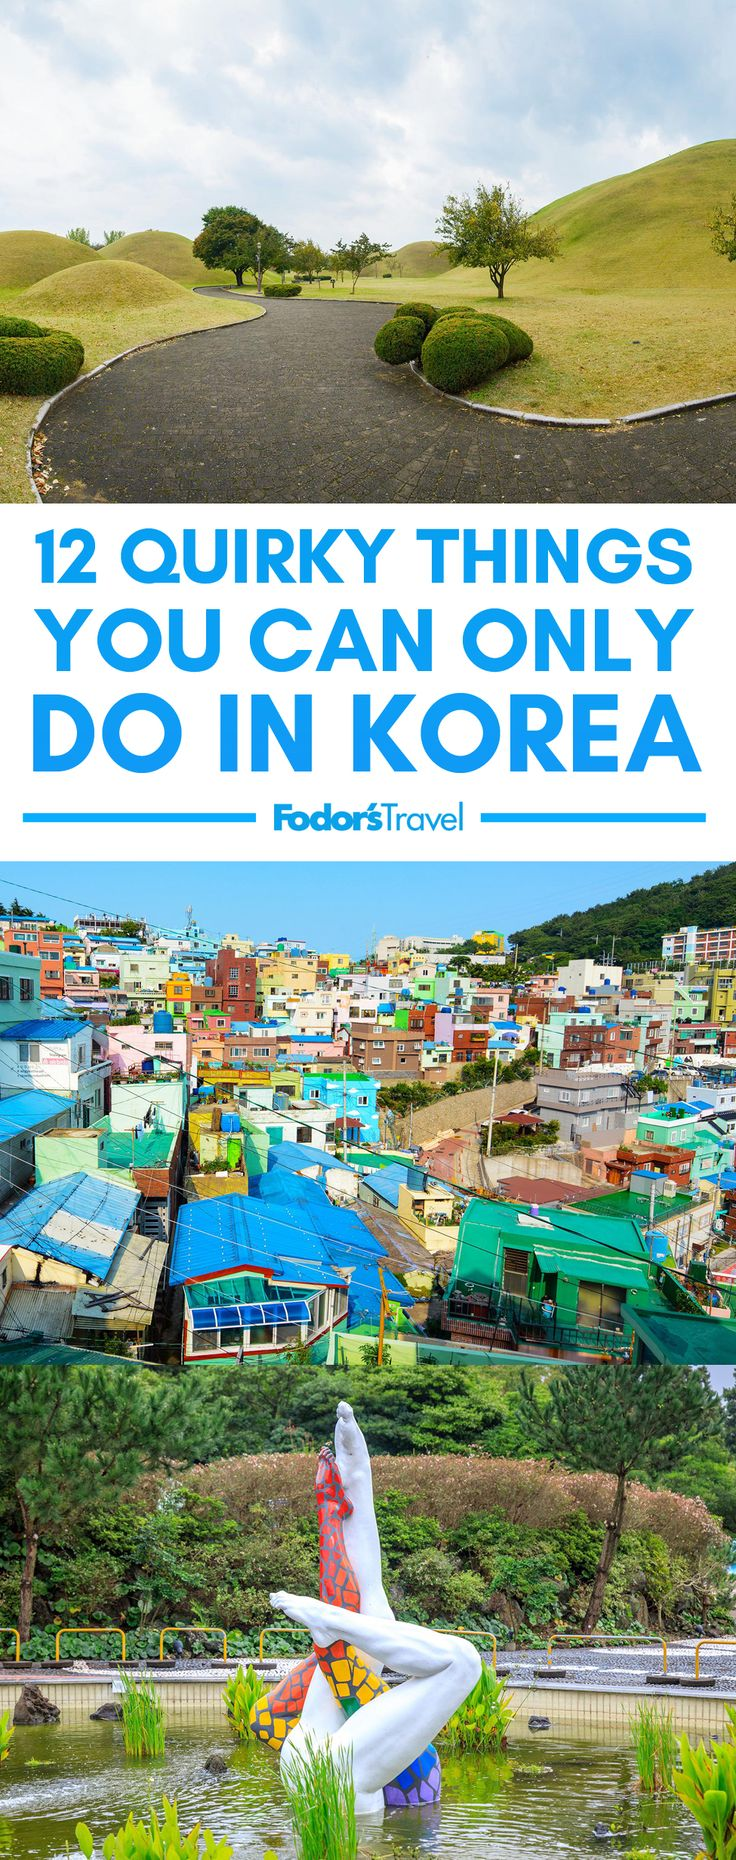 297 Best Korea Images On Pinterest Korean Hanbok South And 8d 6n Memorable Jeju Lotte World Tower While May Be Known For K Pop Kimchi Taekwondo